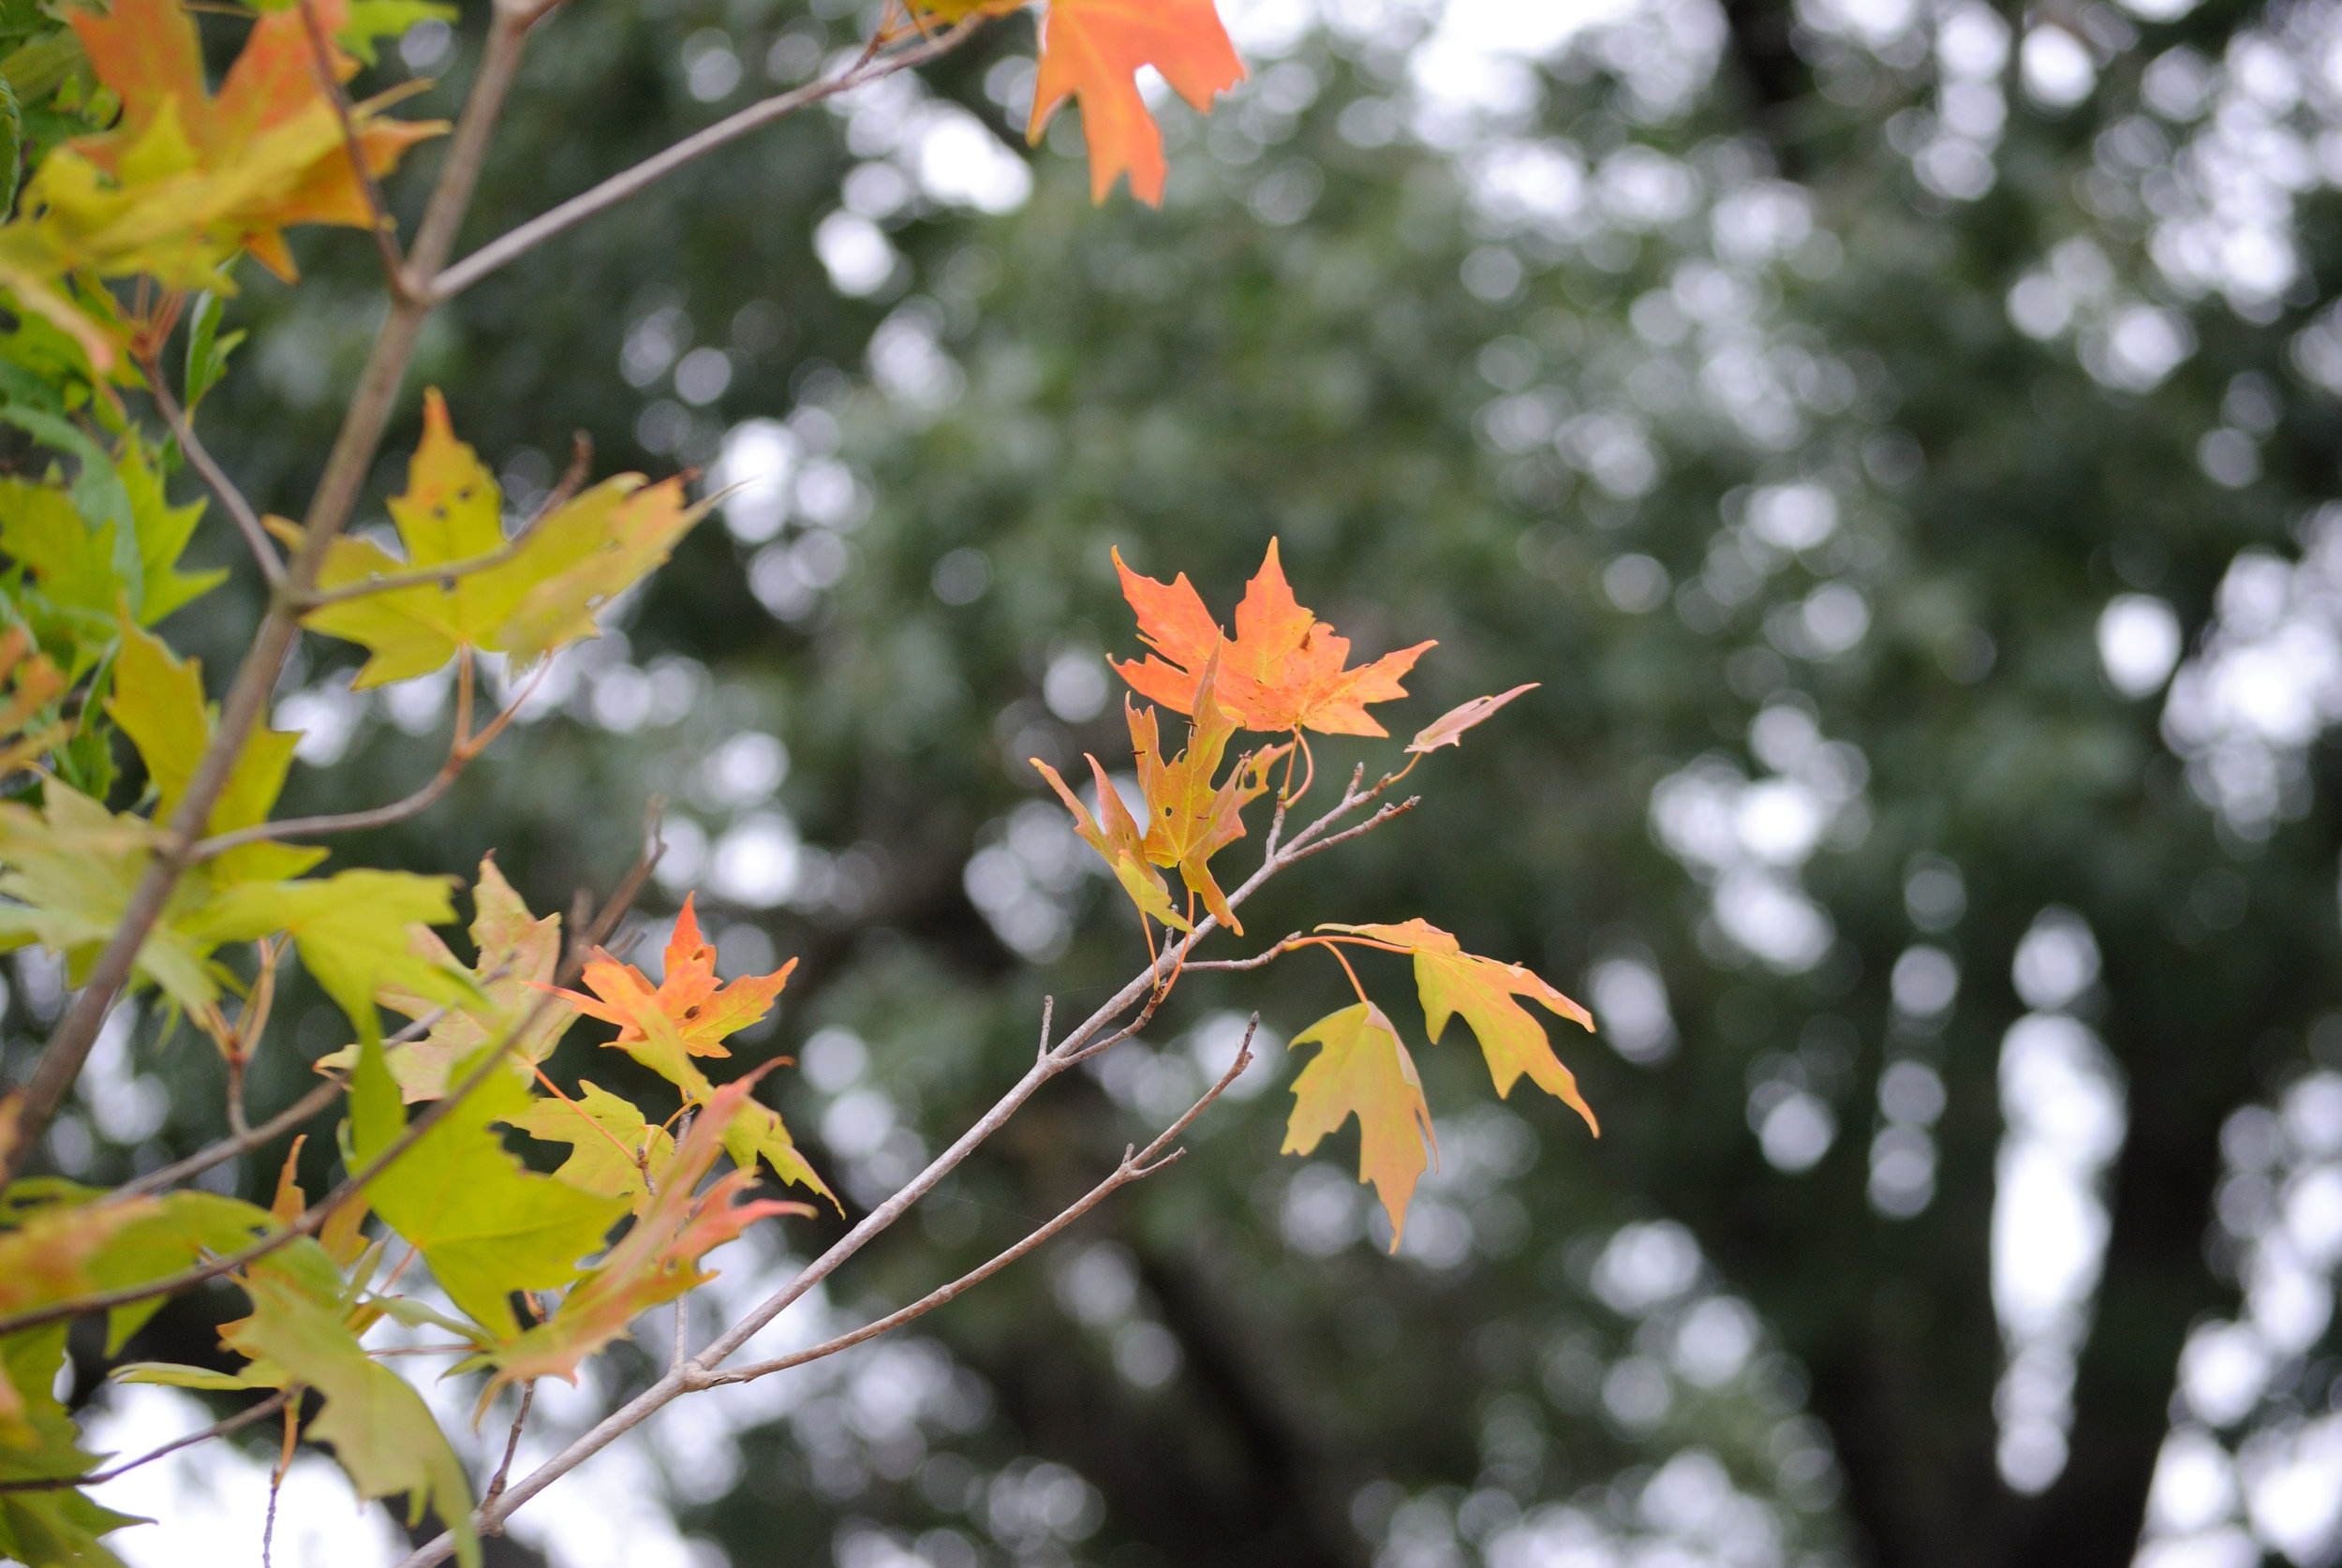 Leaves changing colors on campus due to the season change. (Kush Kumar, Grab Photographer/The Daily Campus)